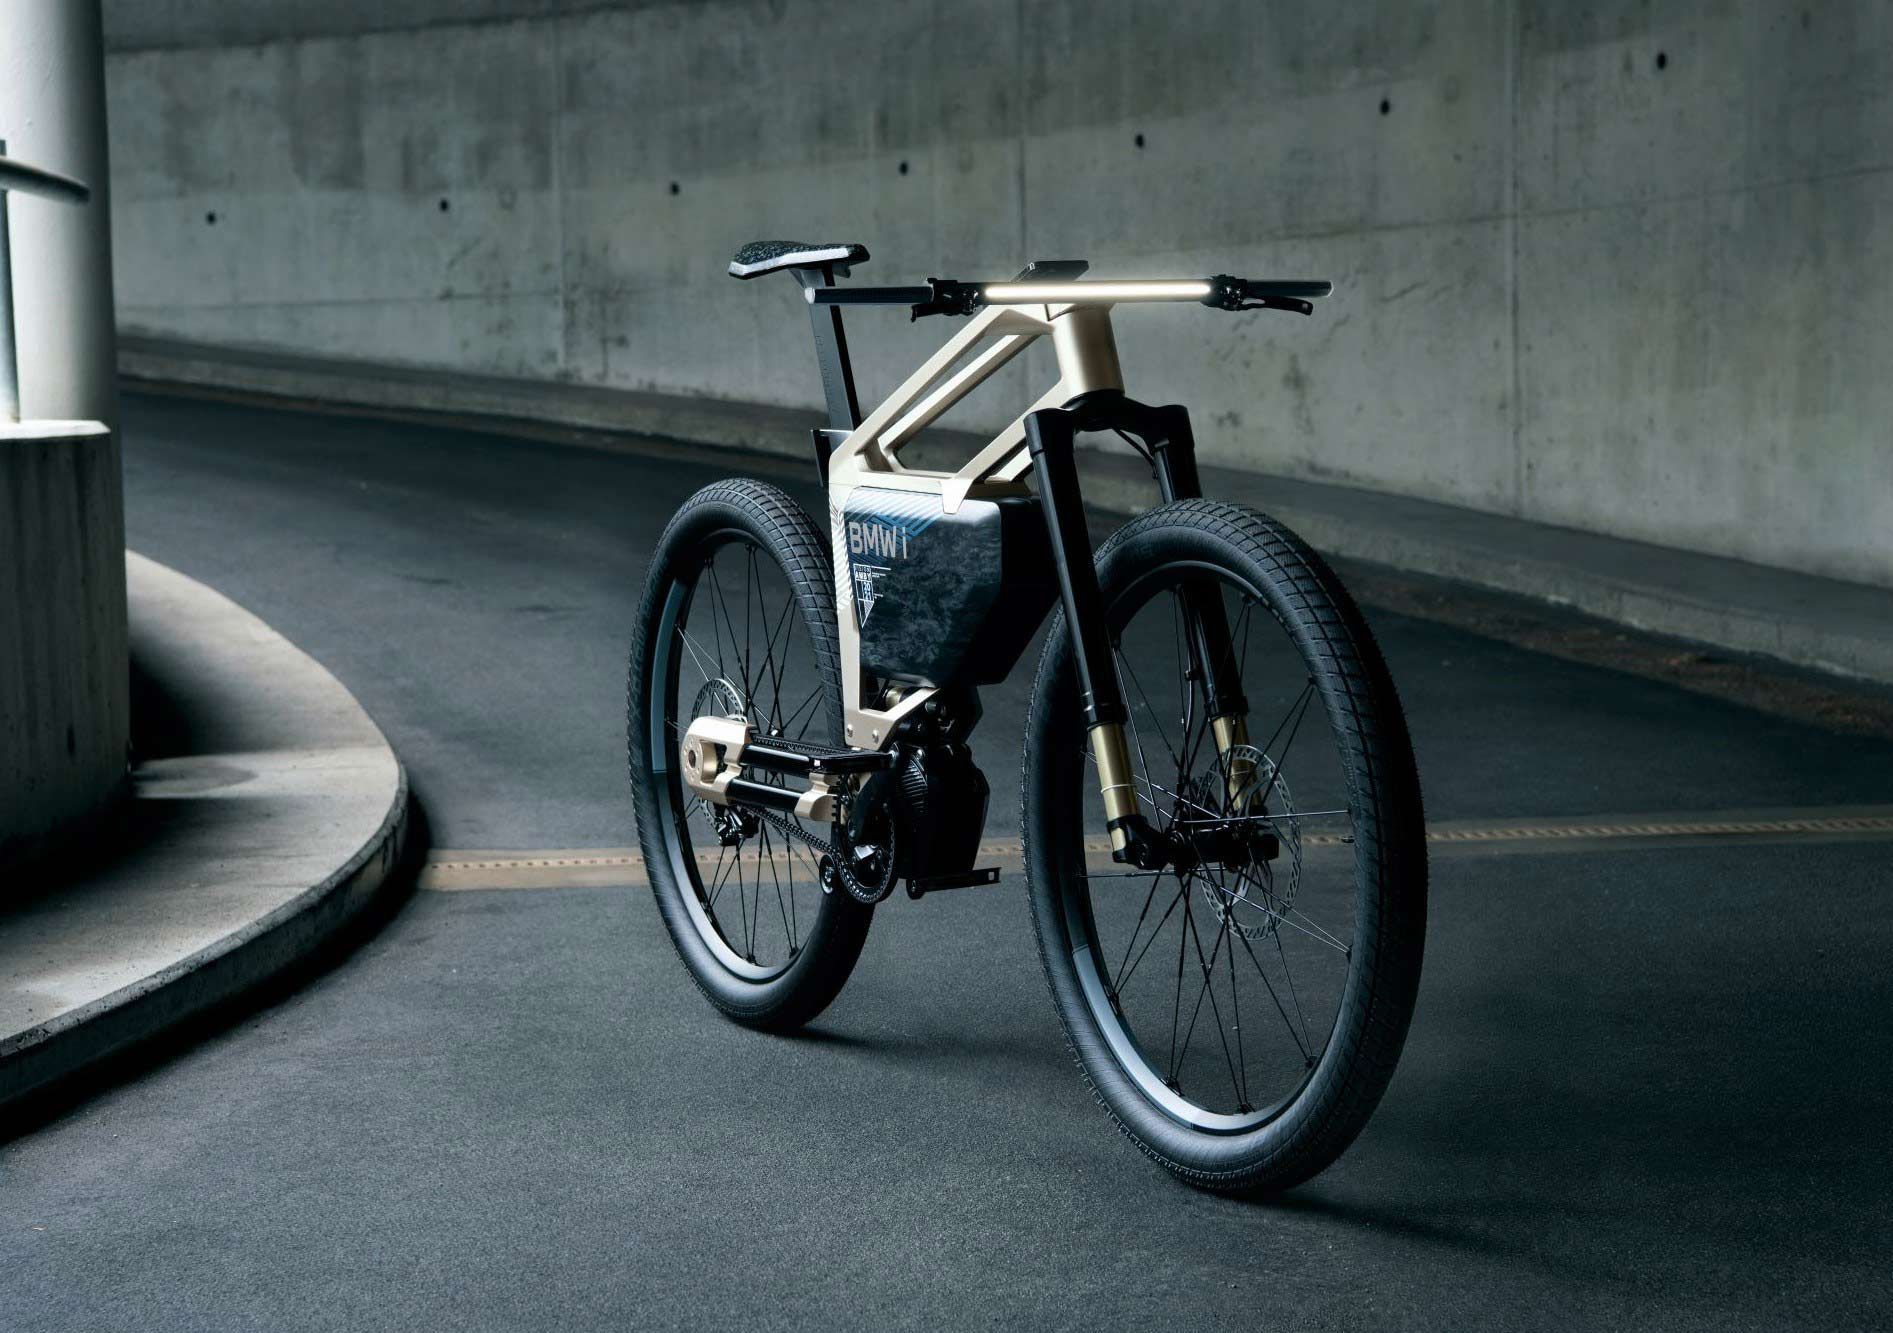 The i Vision Amby is the electric bicycle of the pair, featuring a modern frame with a huge battery pack and three drive modes. Claimed range is up to 186 miles, with a claimed top speed of 37 mph.